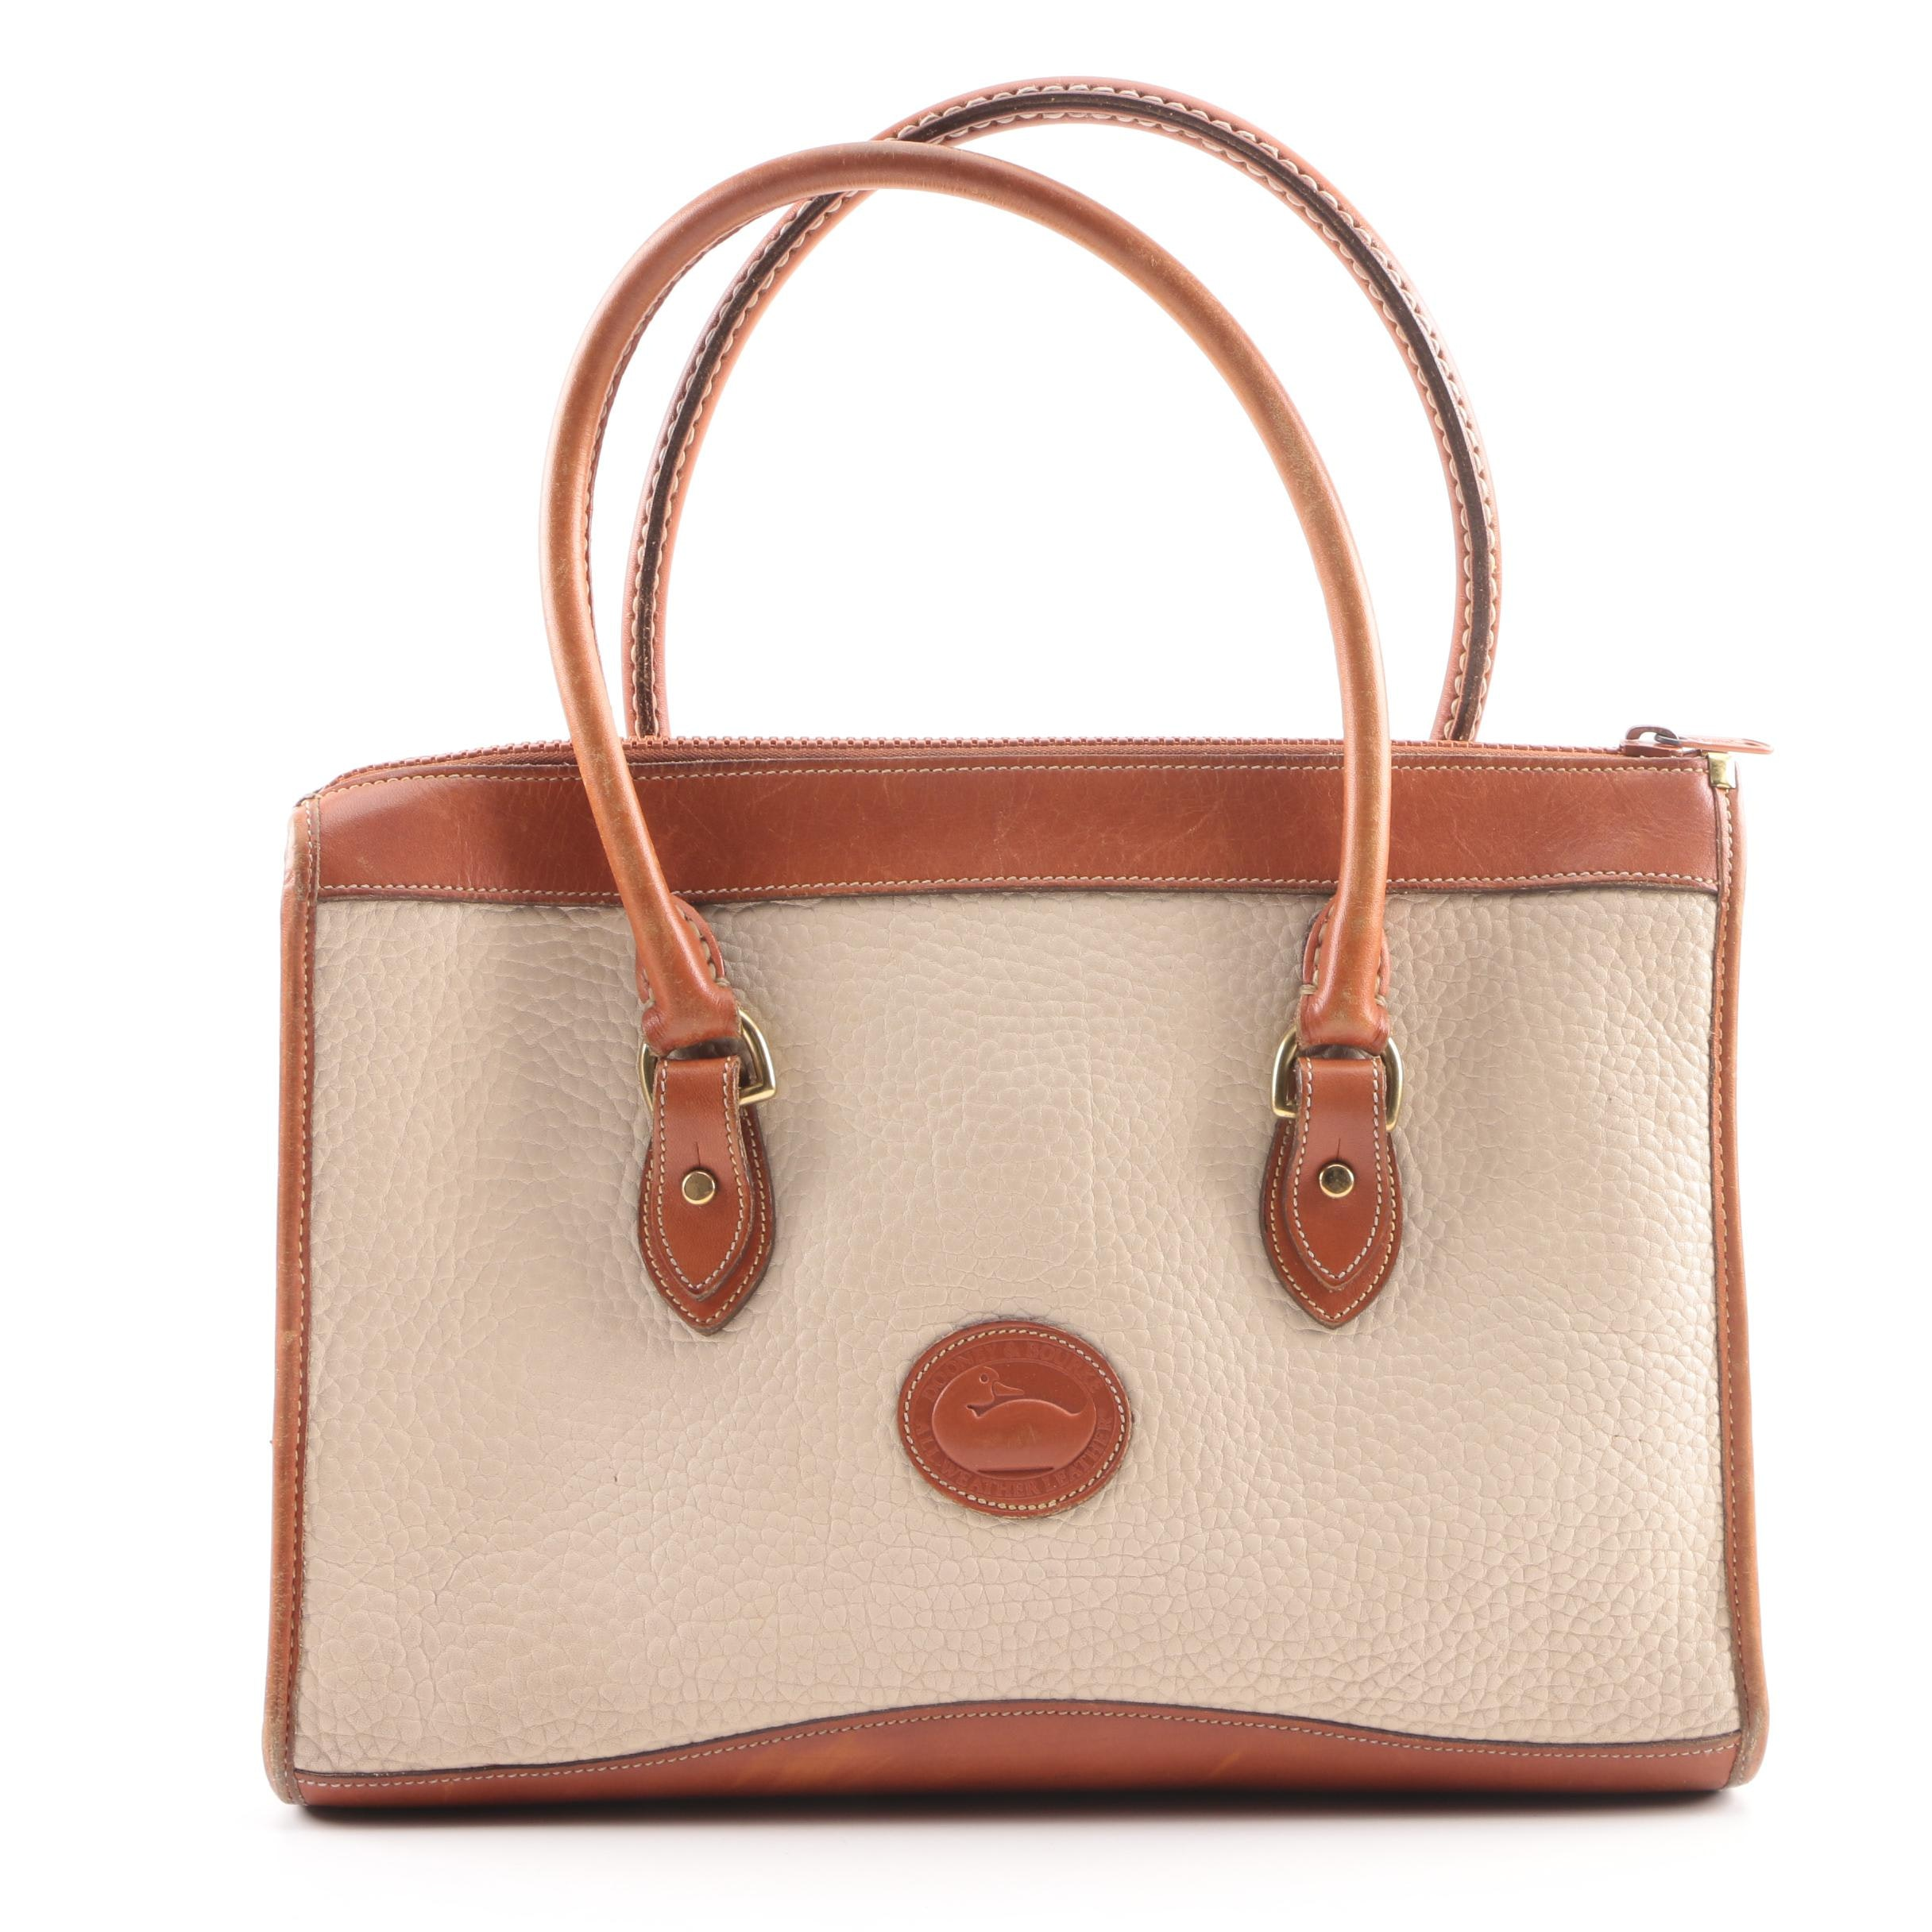 Dooney & Bourke All-Weather Leather Taupe Pebbled Leather Satchel